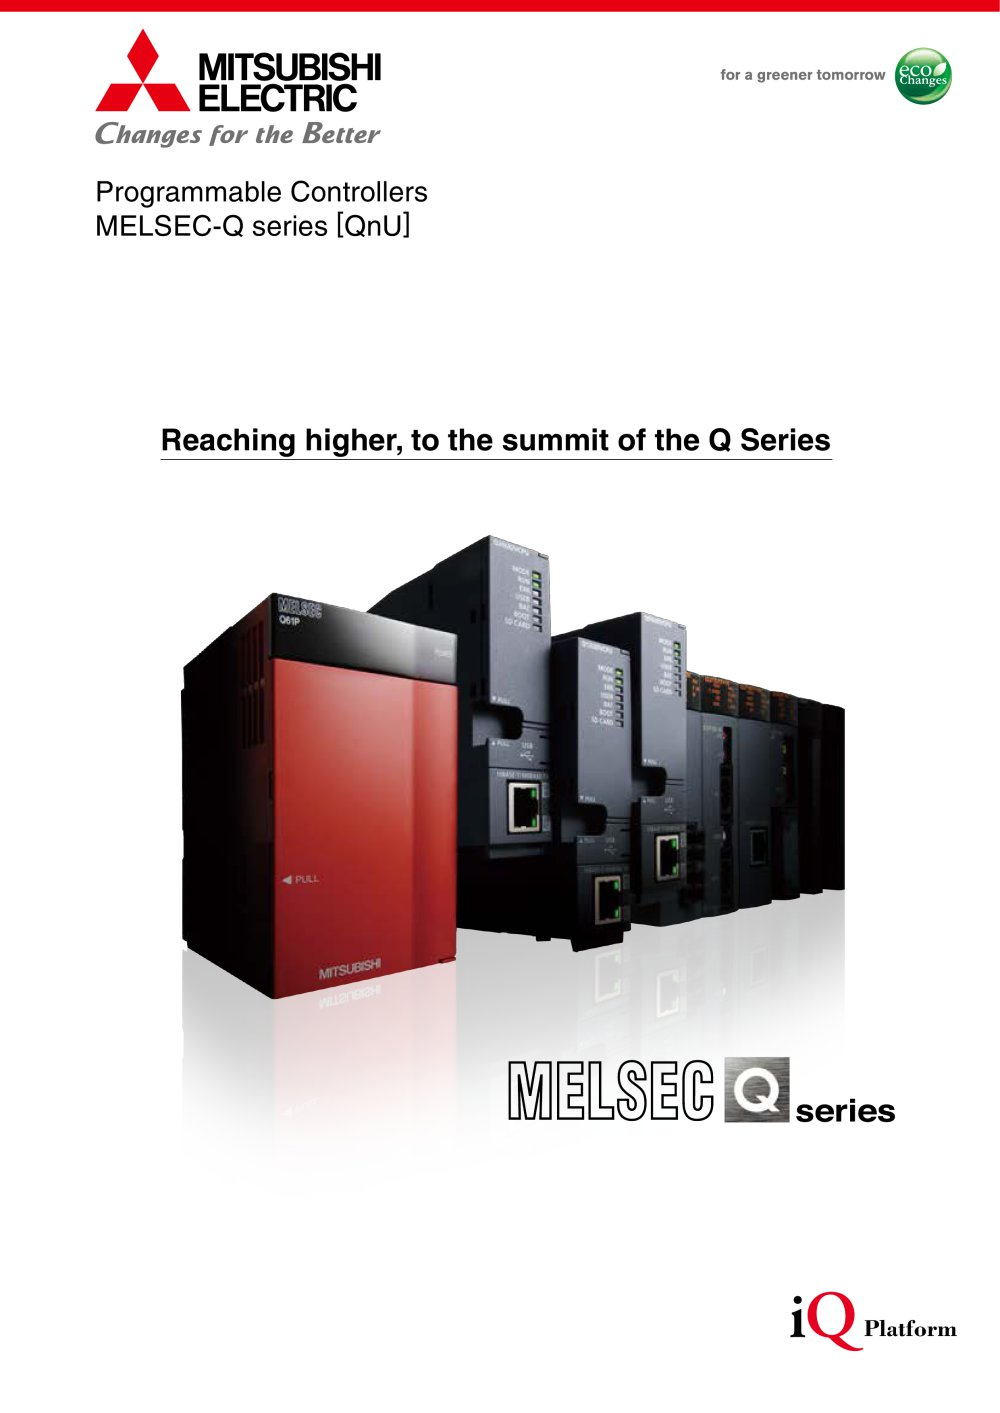 MELSEC-Q Series Programmable Controller Brochure - 1 / 96 Pages